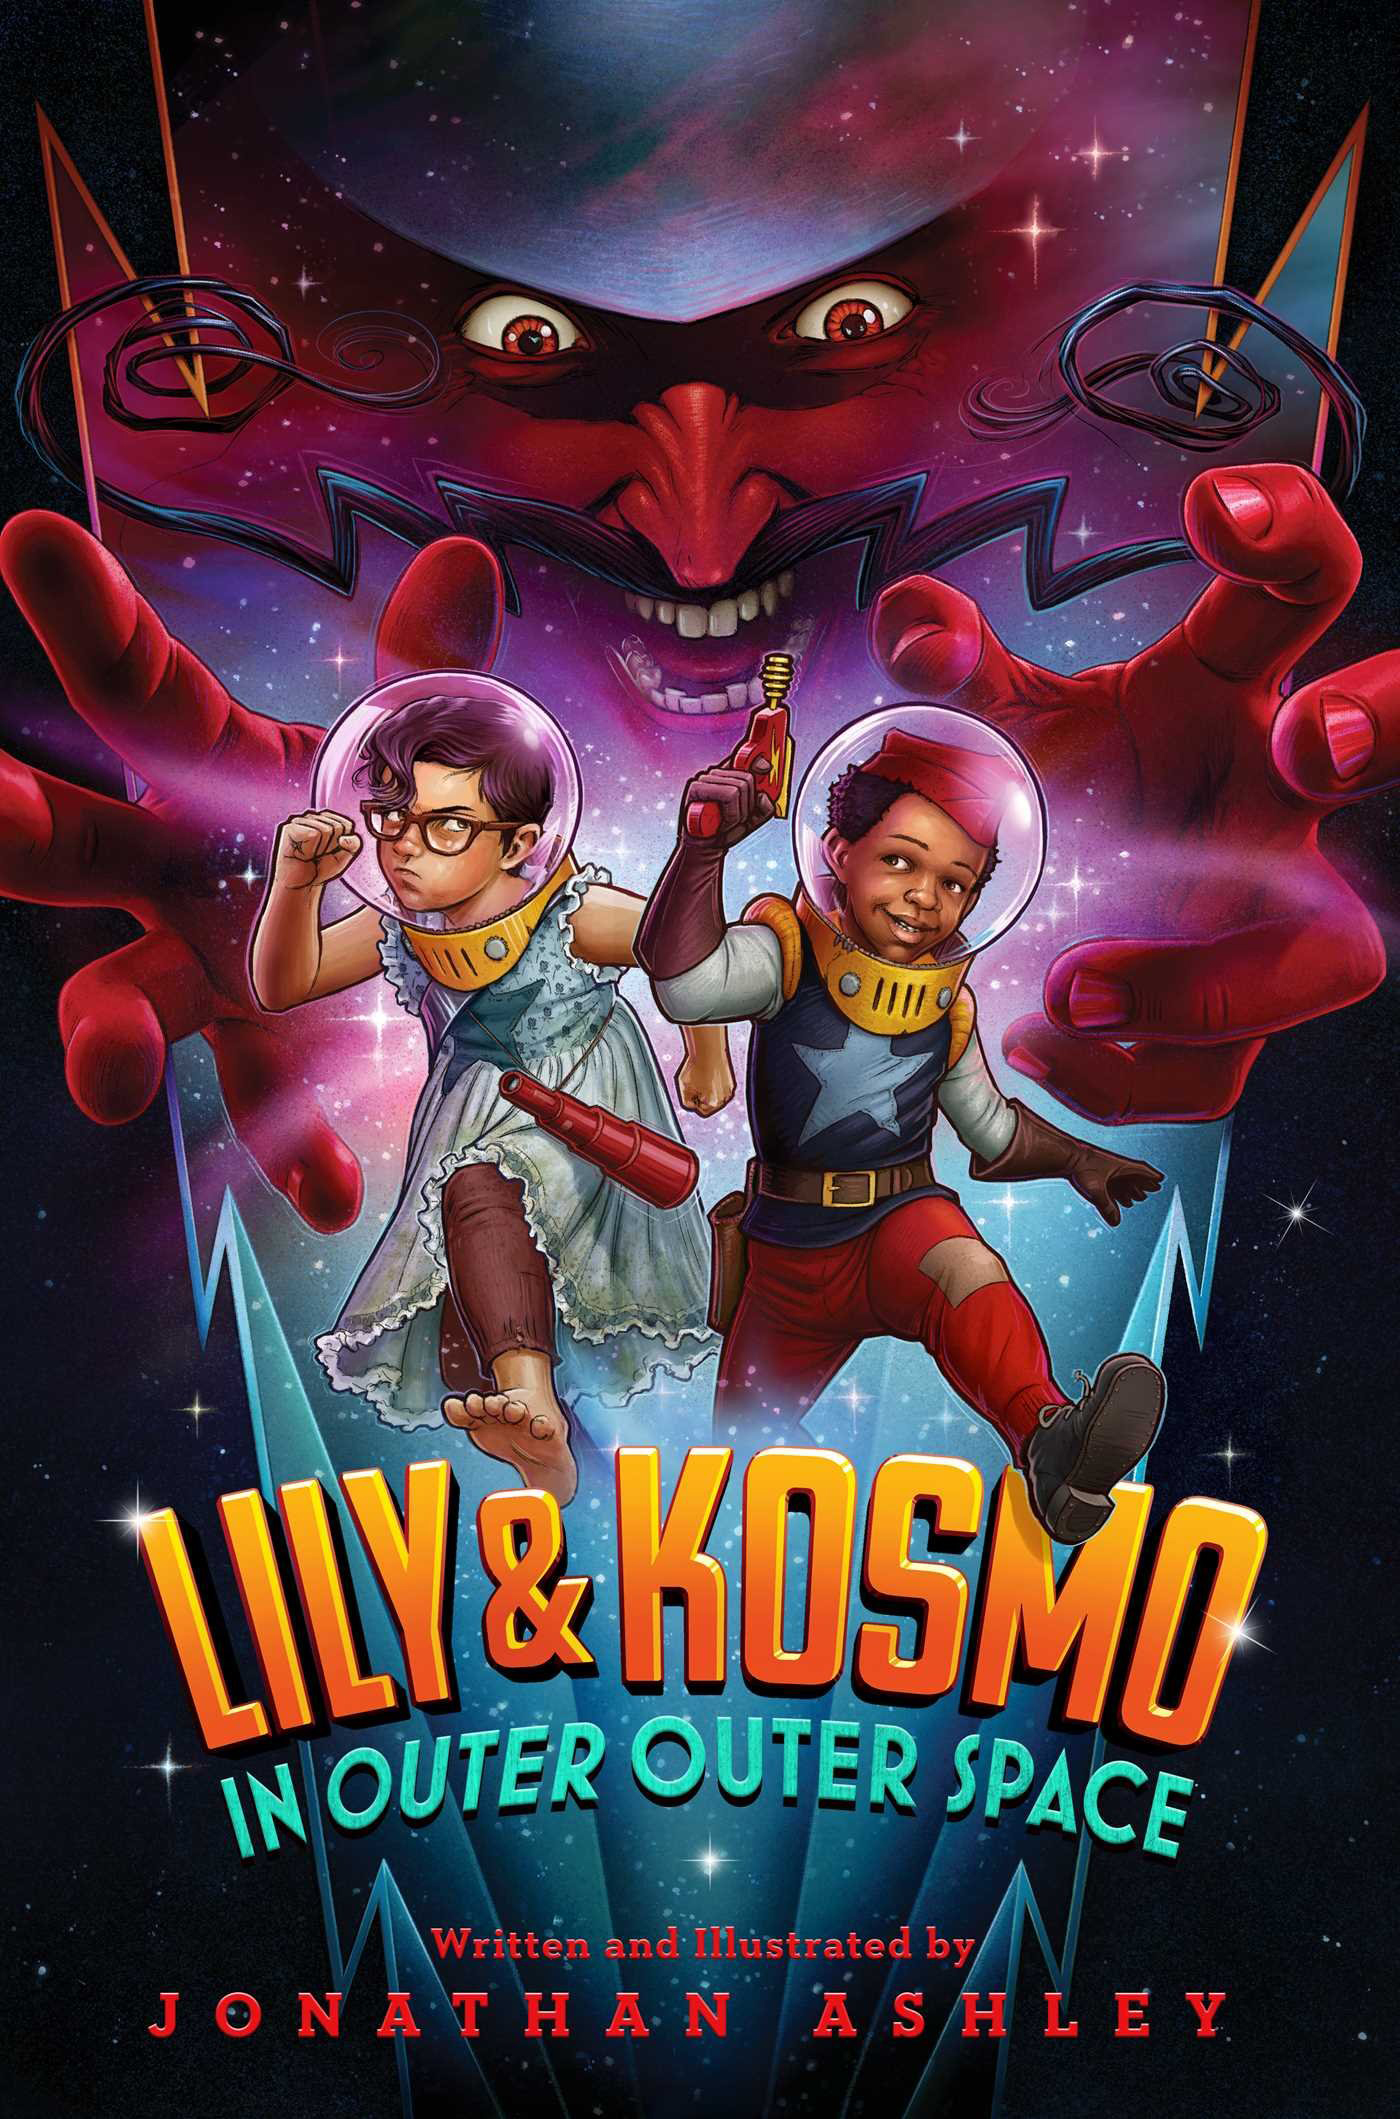 Book Launch: Lily & Kosmo in Outer Outer Space by  Jonathan Ashley